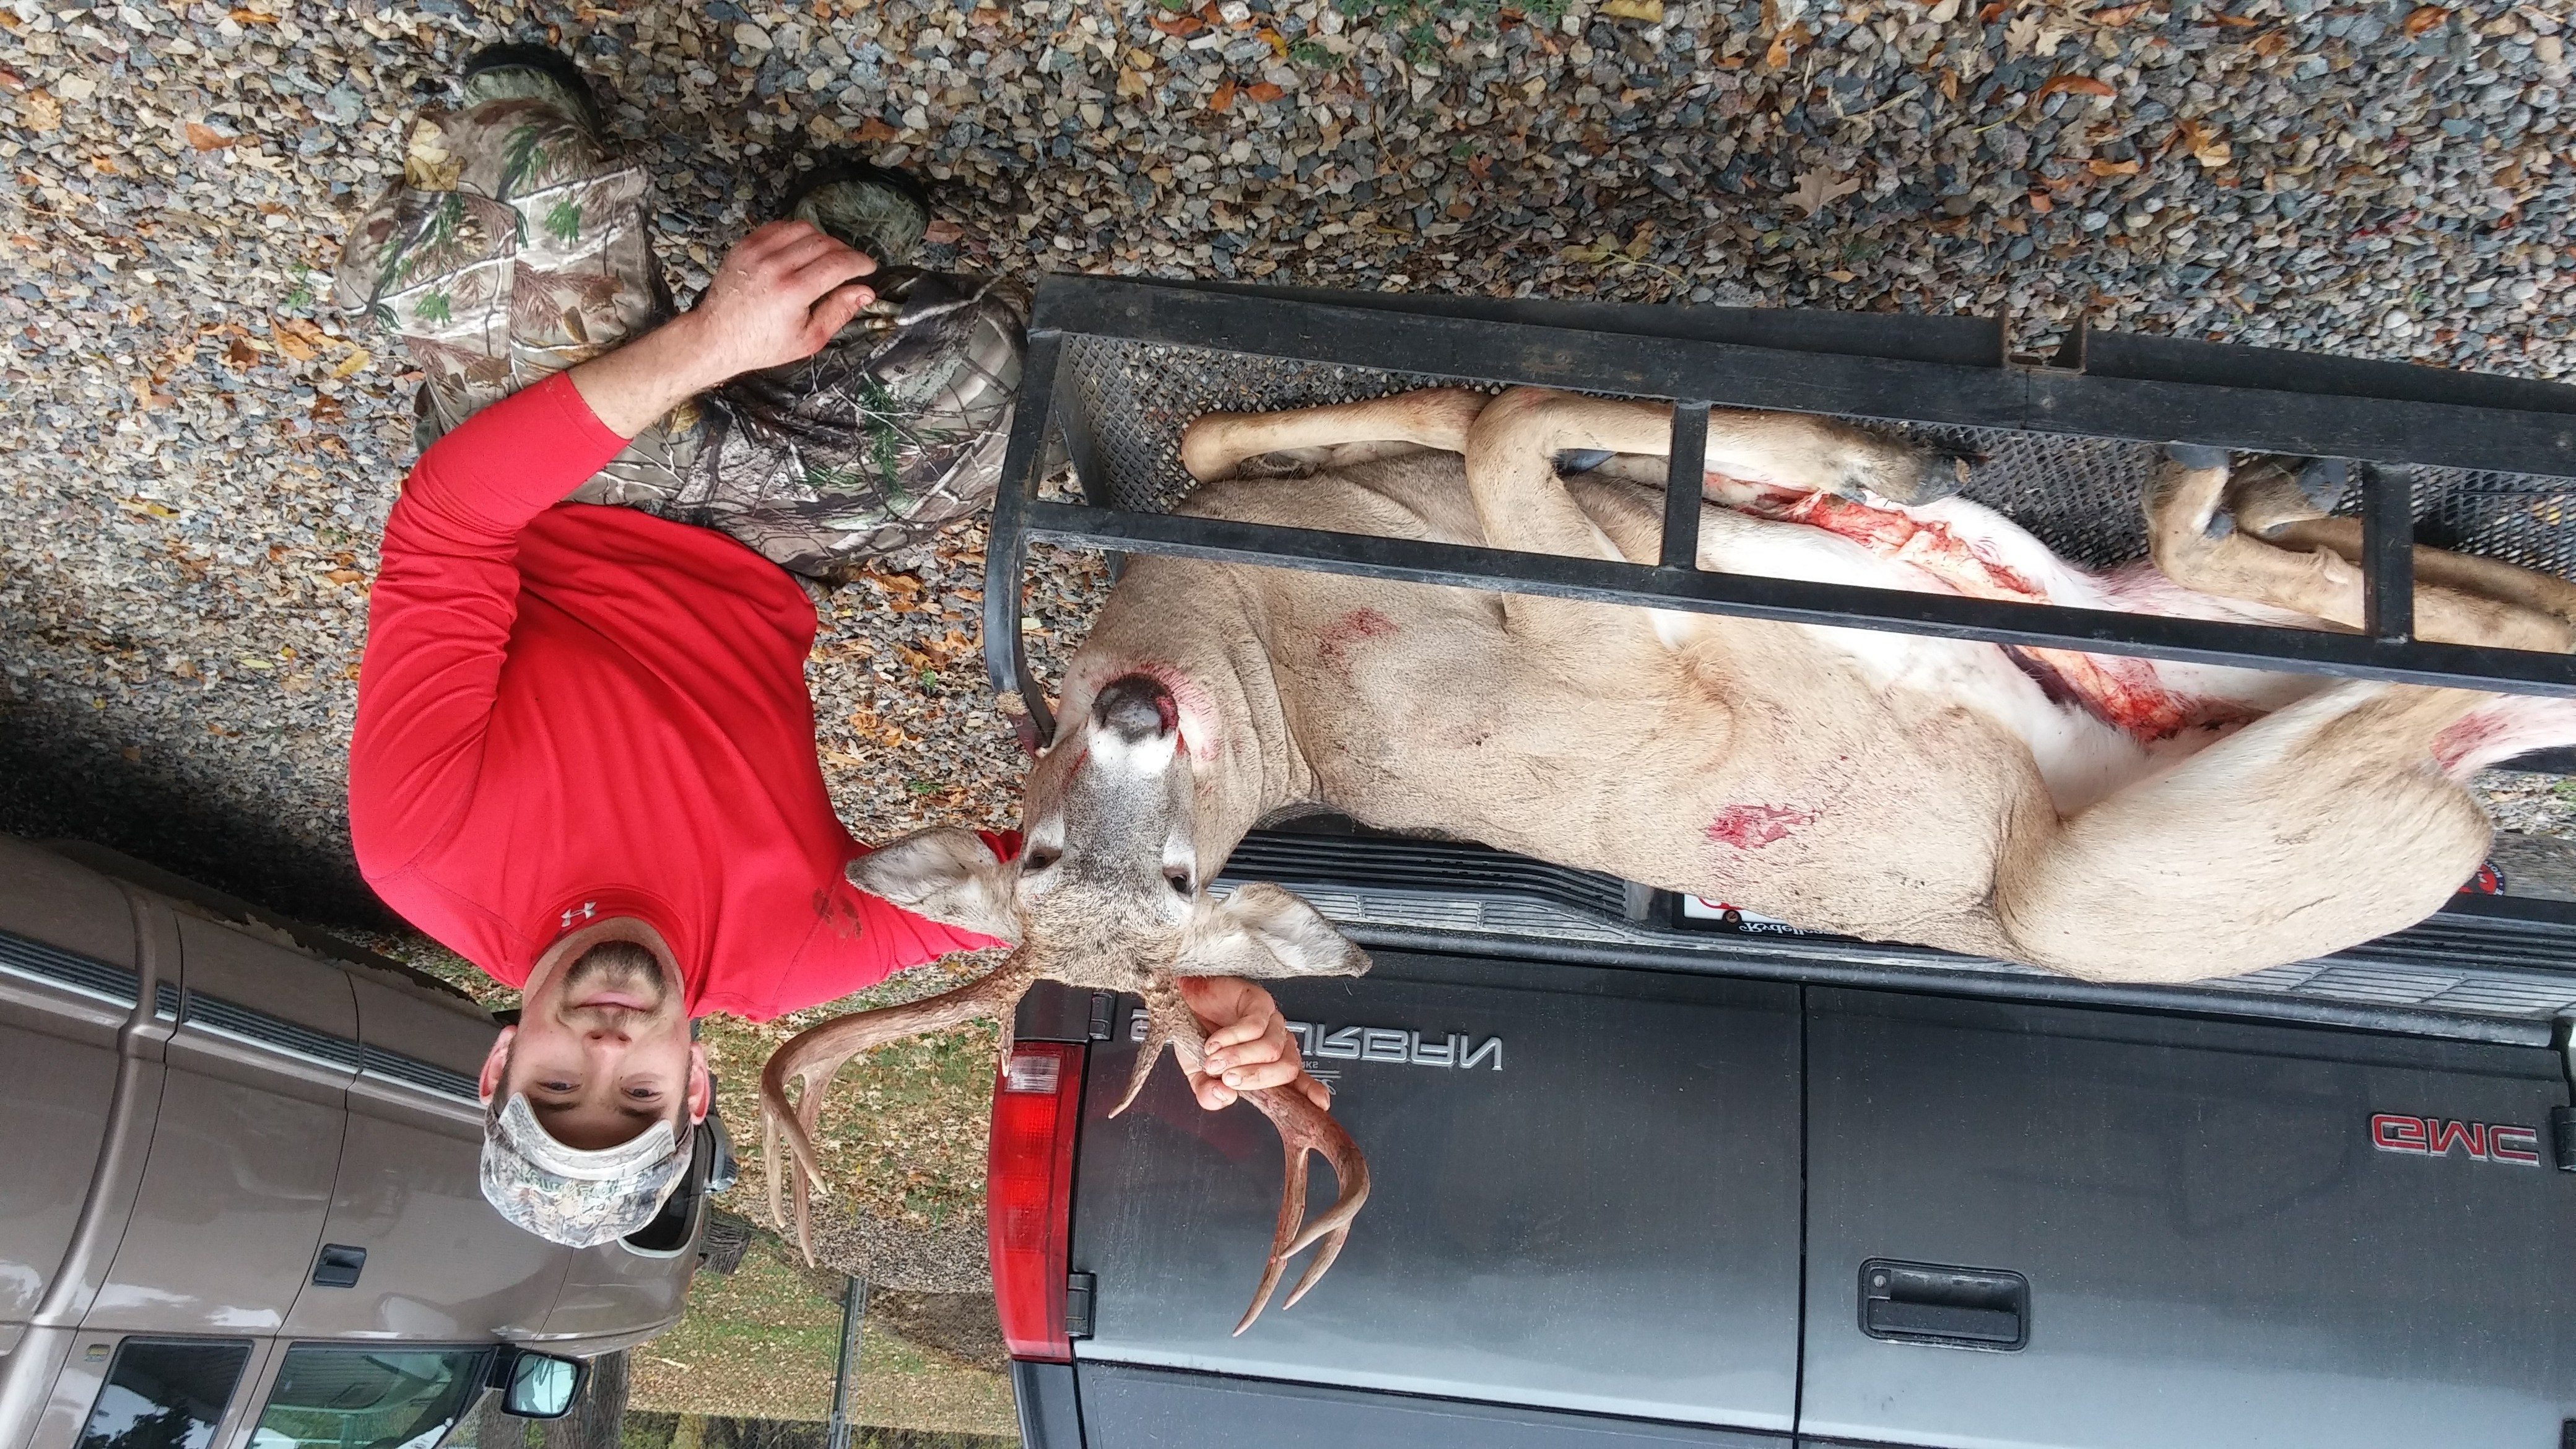 compound bow diagram 3 phase star delta starter wiring killzone - fall in whitetail deer by andrew hogenson   bowhunting.com